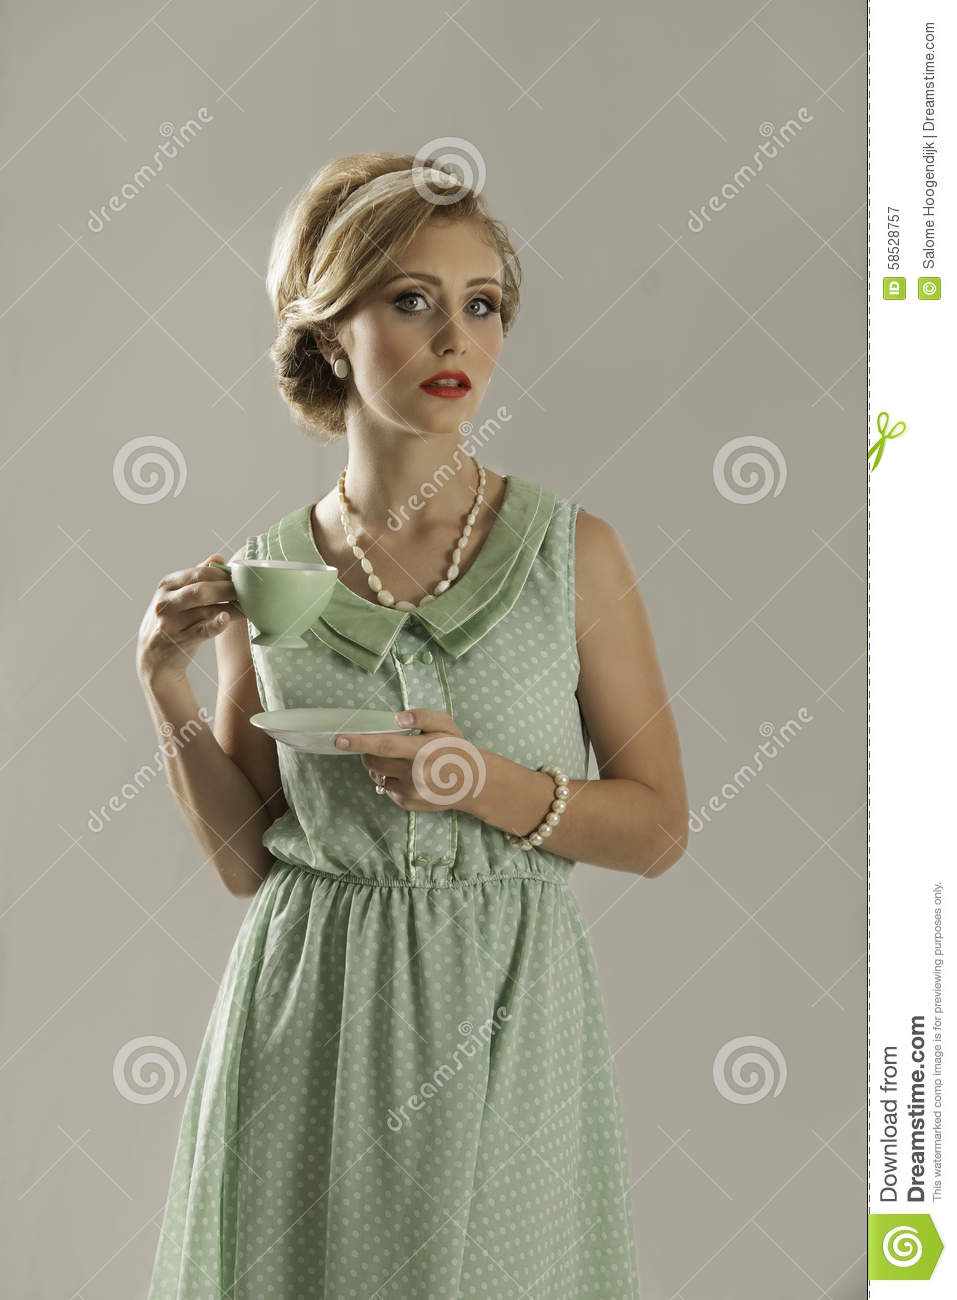 Retro 1950s Woman With Porcelain Teacup Stock Image